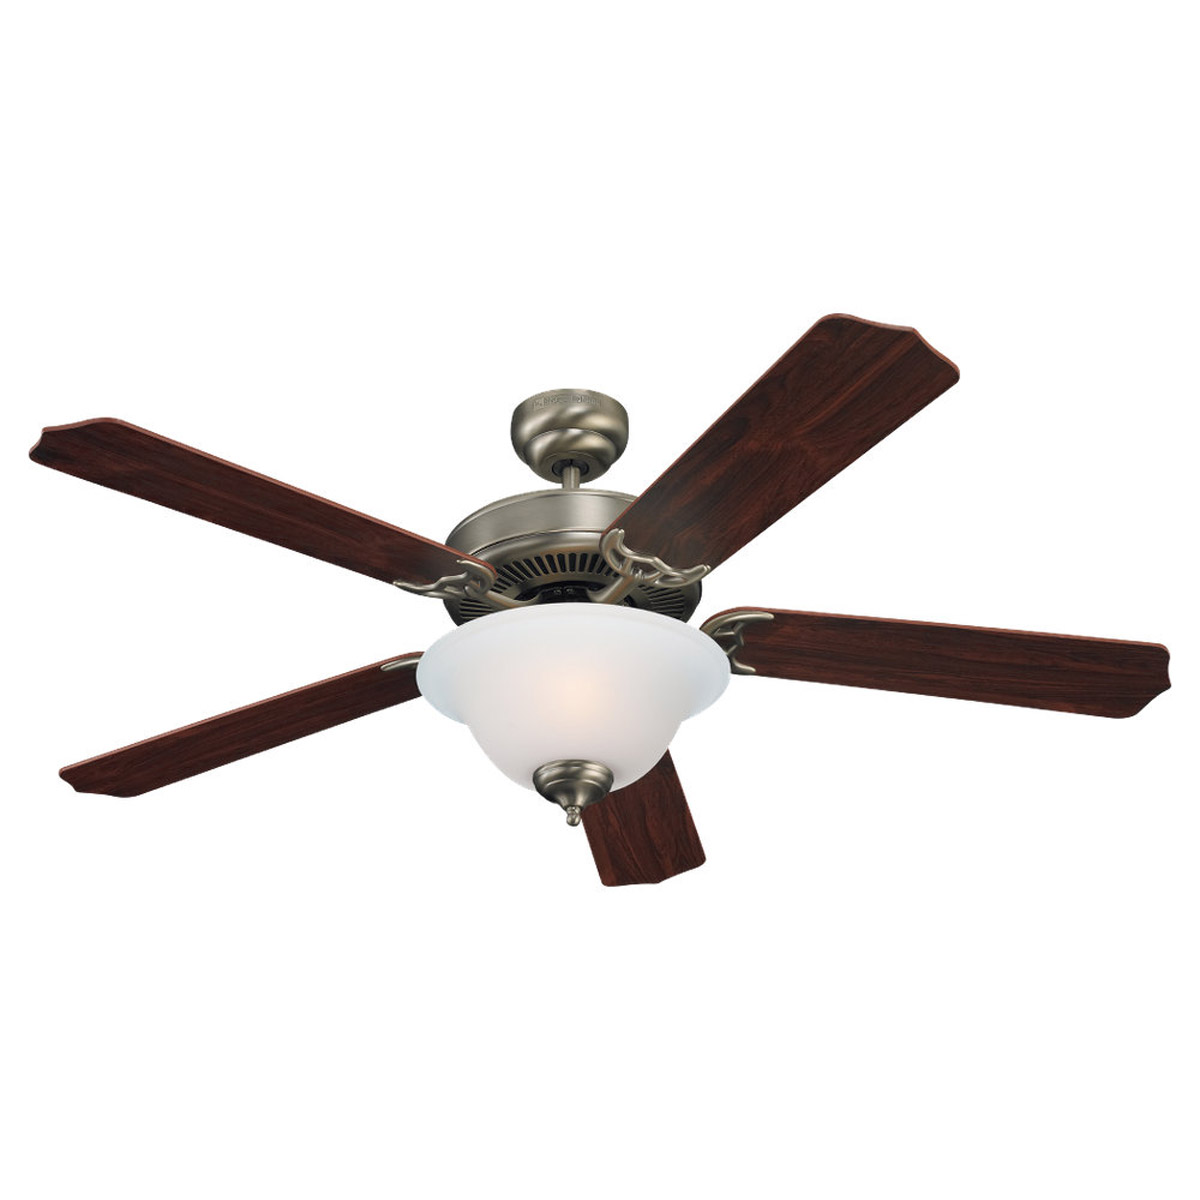 Sea Gull Lighting 2 Light 52in Quality Max Plus Ceiling Fan in Antique Brushed Nickel 15030BLE-965